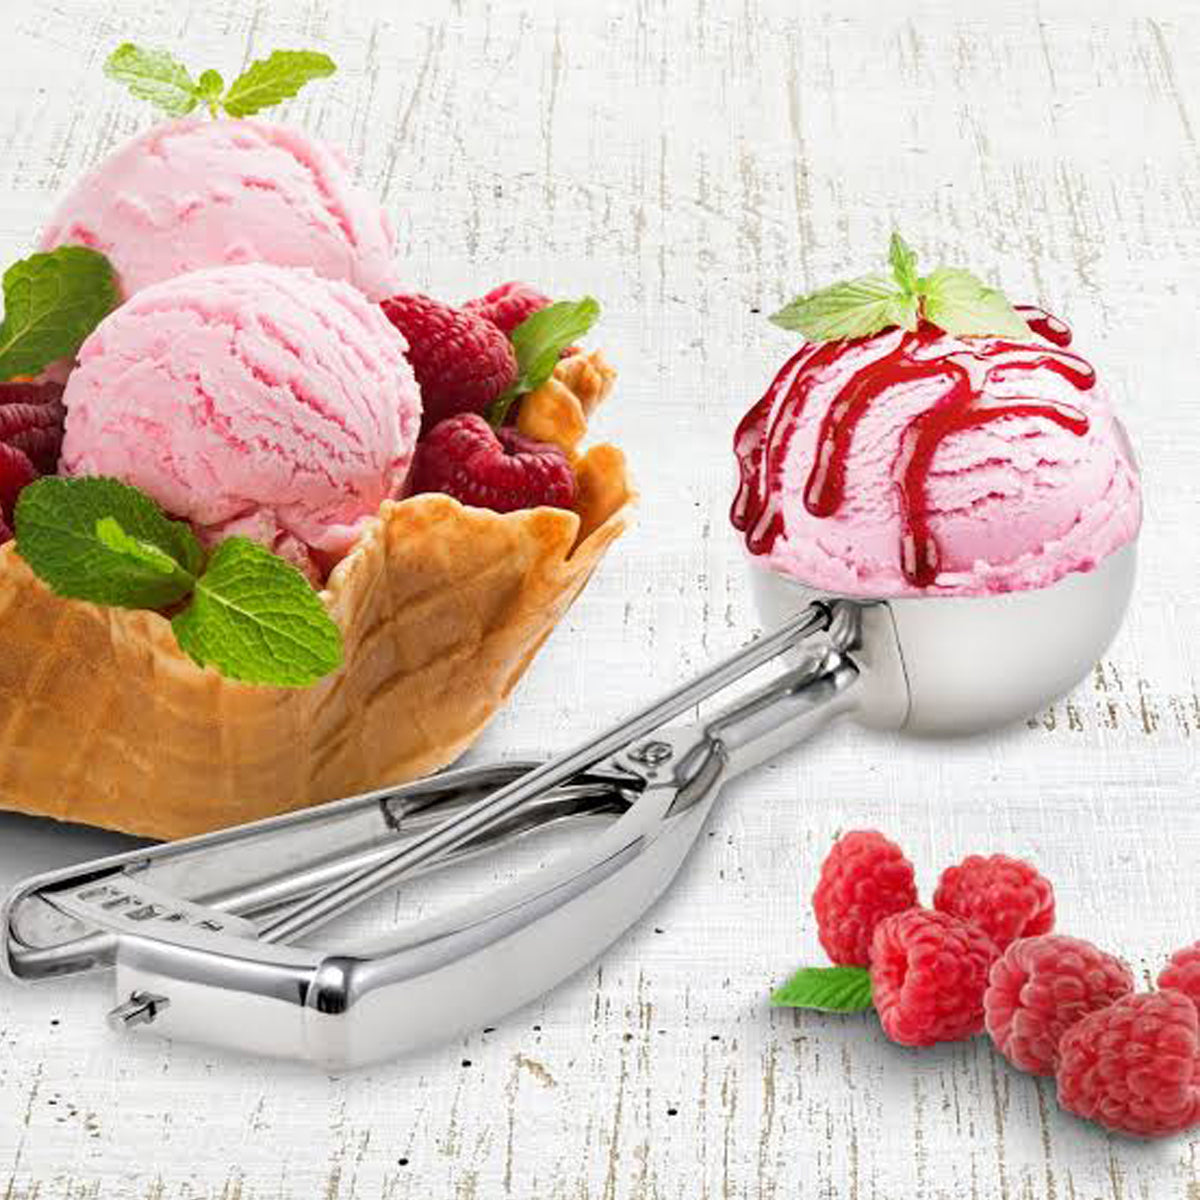 Stainless Steel Ice Cream Scoop-JW133